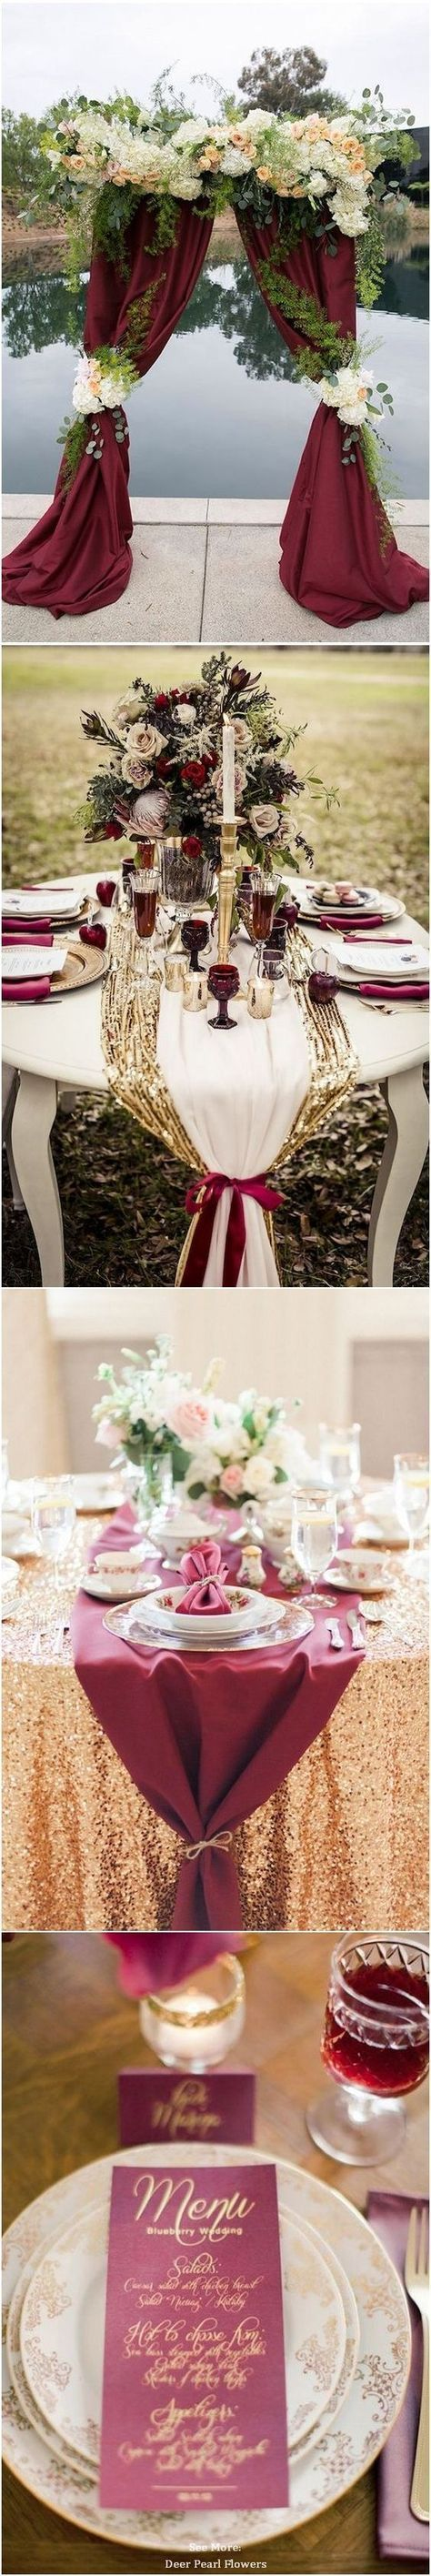 Zombie wedding decorations november 2018 burgundy and gold fall wedding color ideas